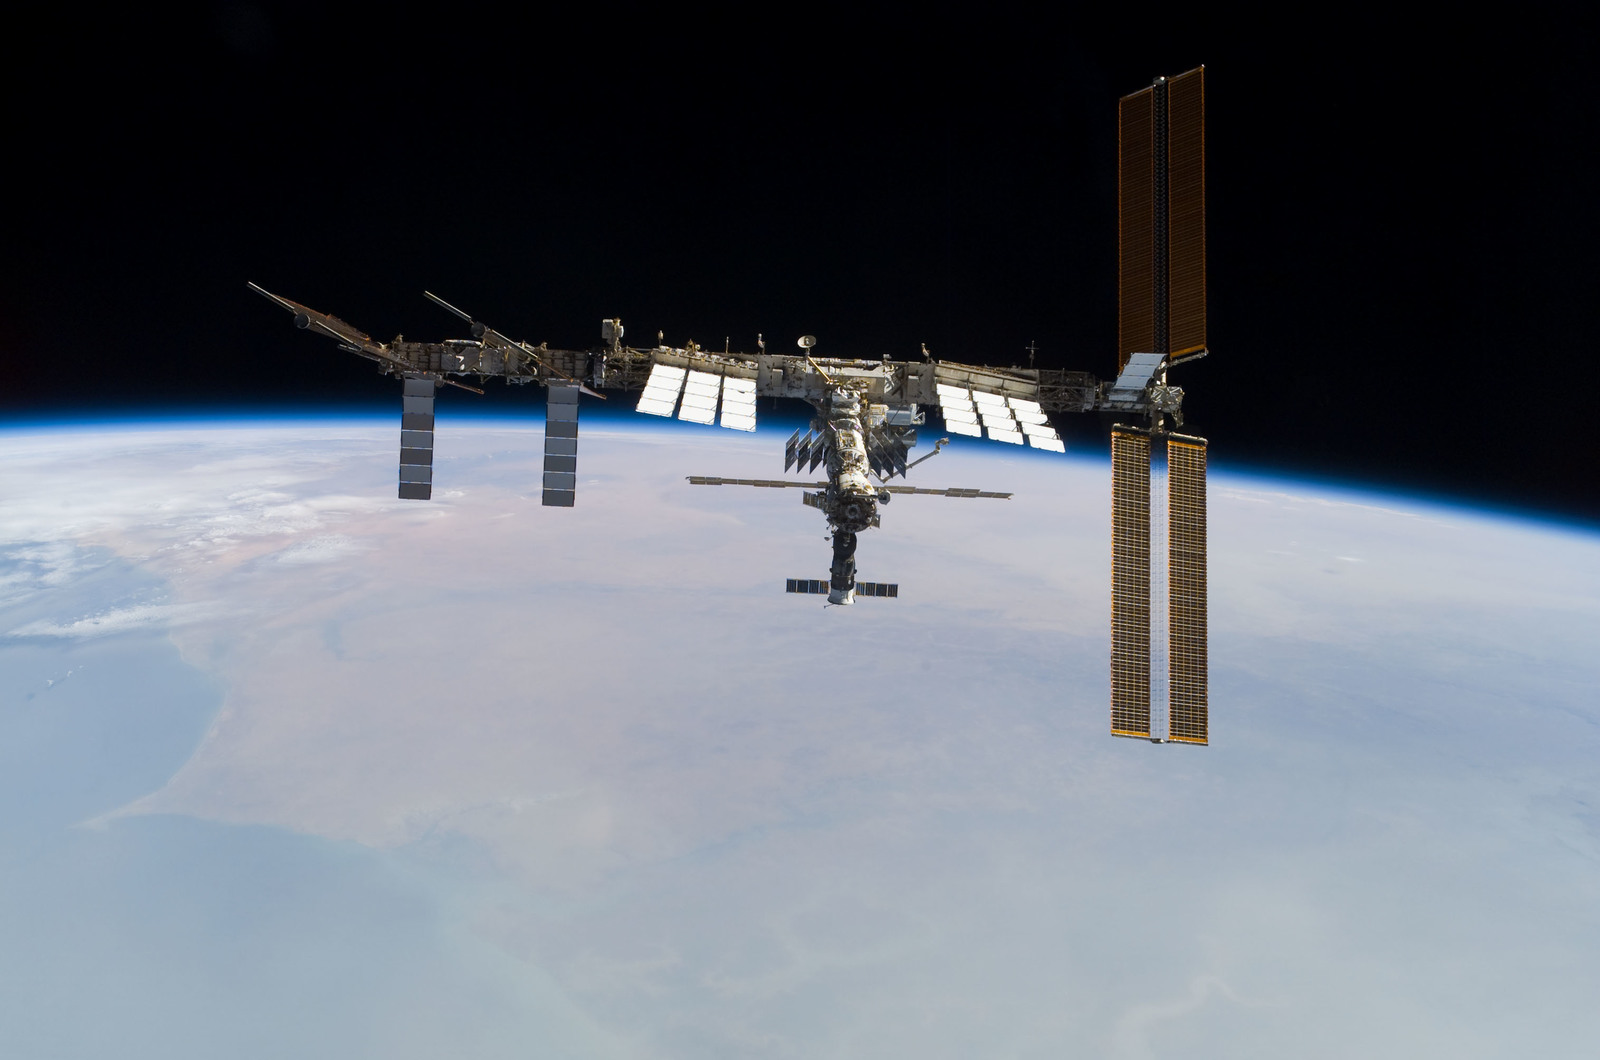 S122E010967 - STS-122 - View of ISS after STS-122 Undocking